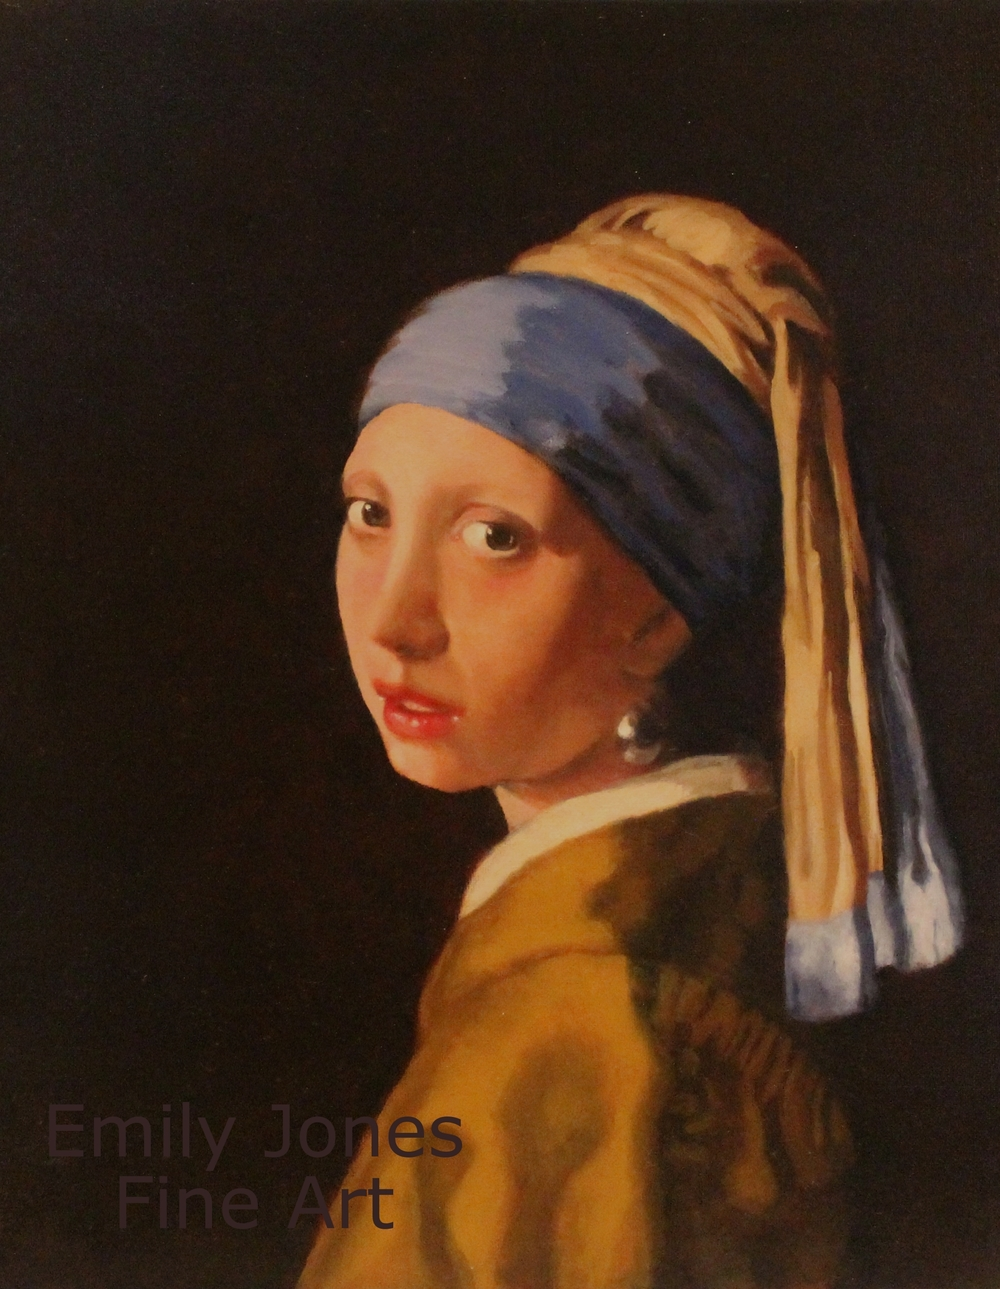 Copy After Johannes Vermeer  | 2013 | Oil on canvas